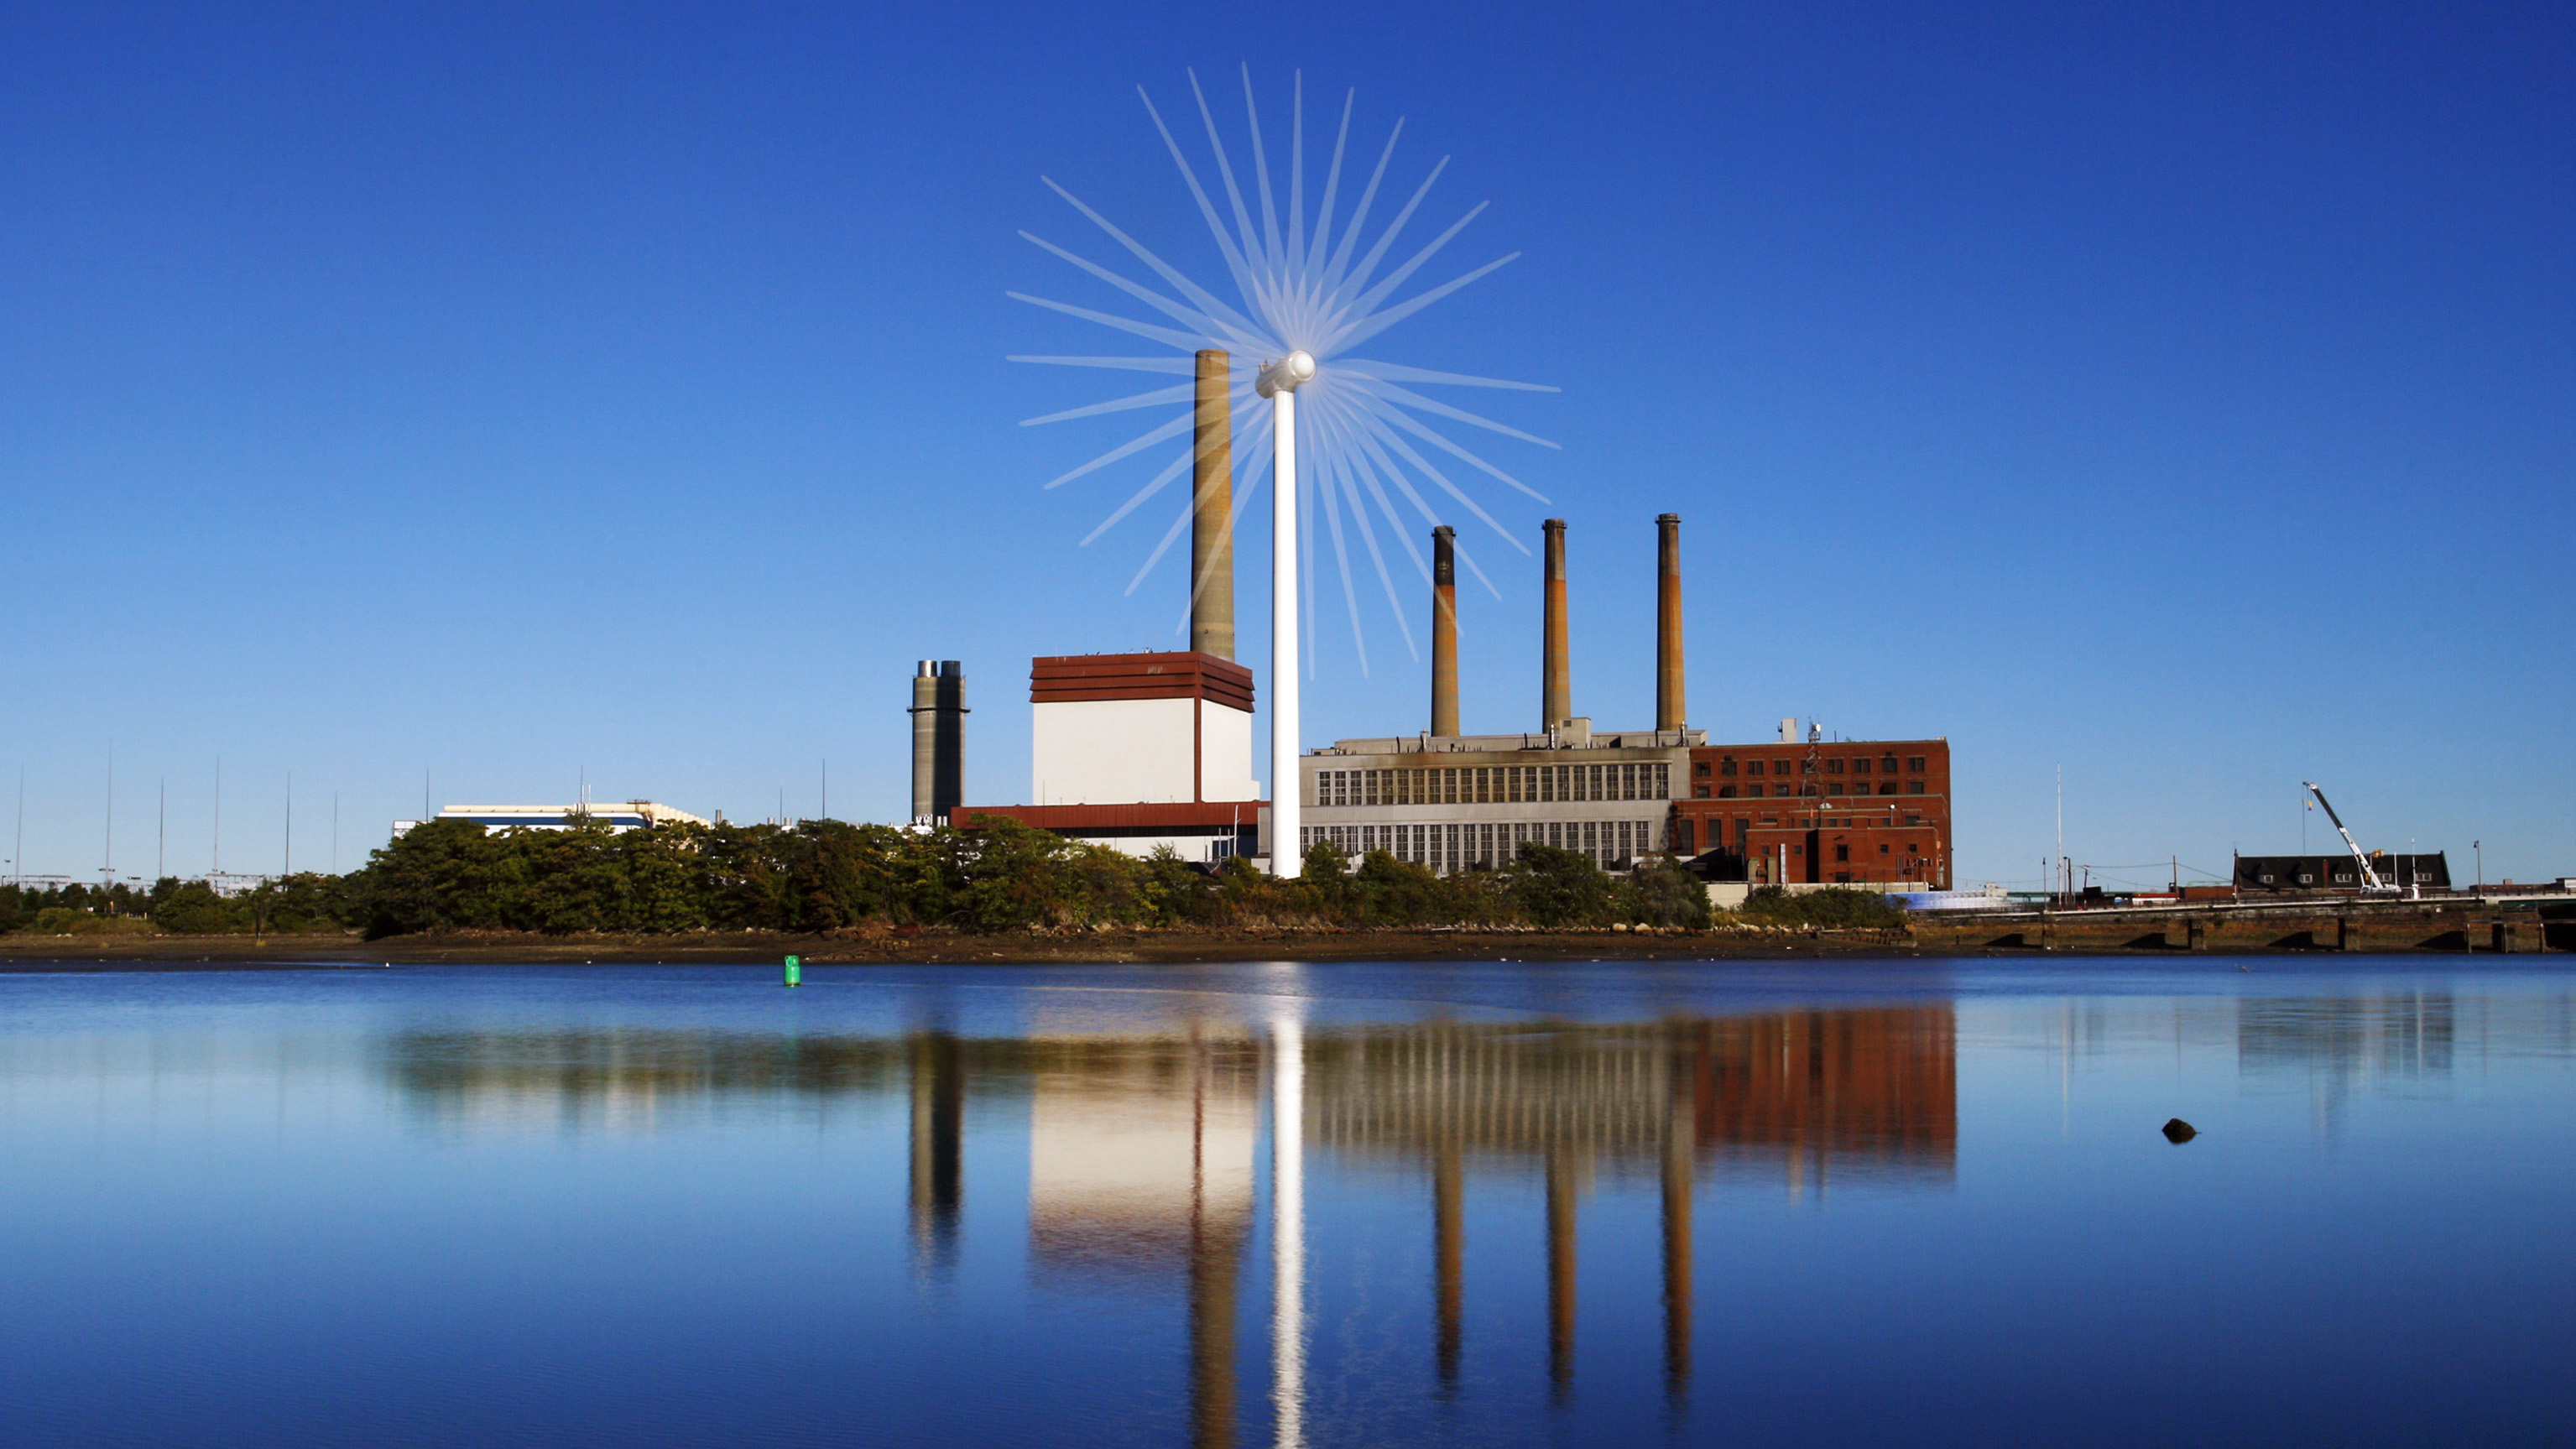 Wind turbine in front of oil and gas power plant